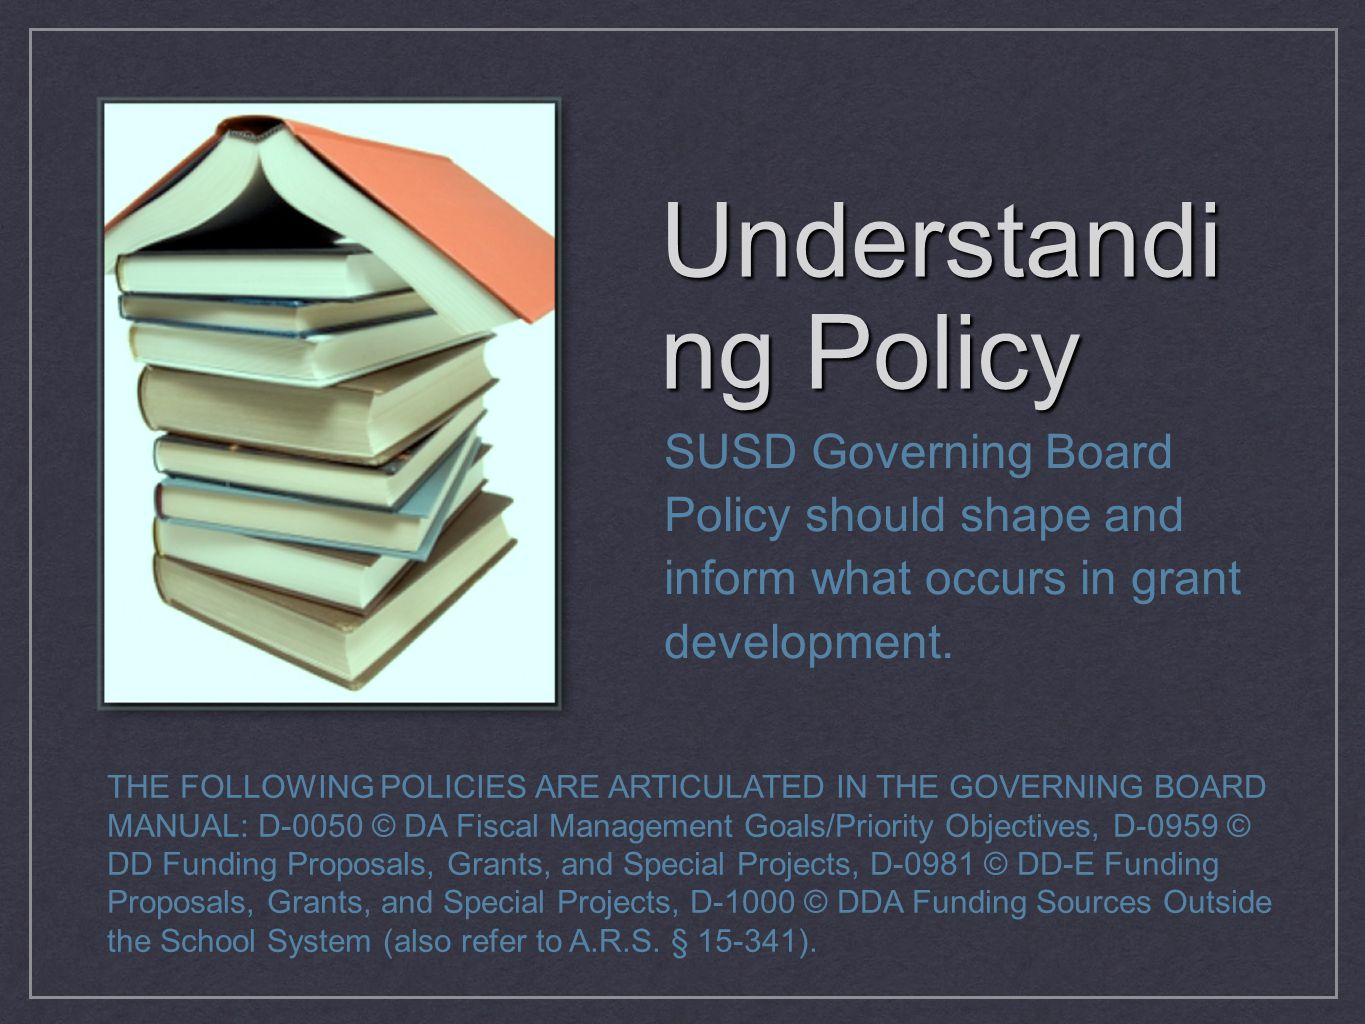 Understandi ng Policy SUSD Governing Board Policy should shape and inform what occurs in grant development. THE FOLLOWING POLICIES ARE ARTICULATED IN